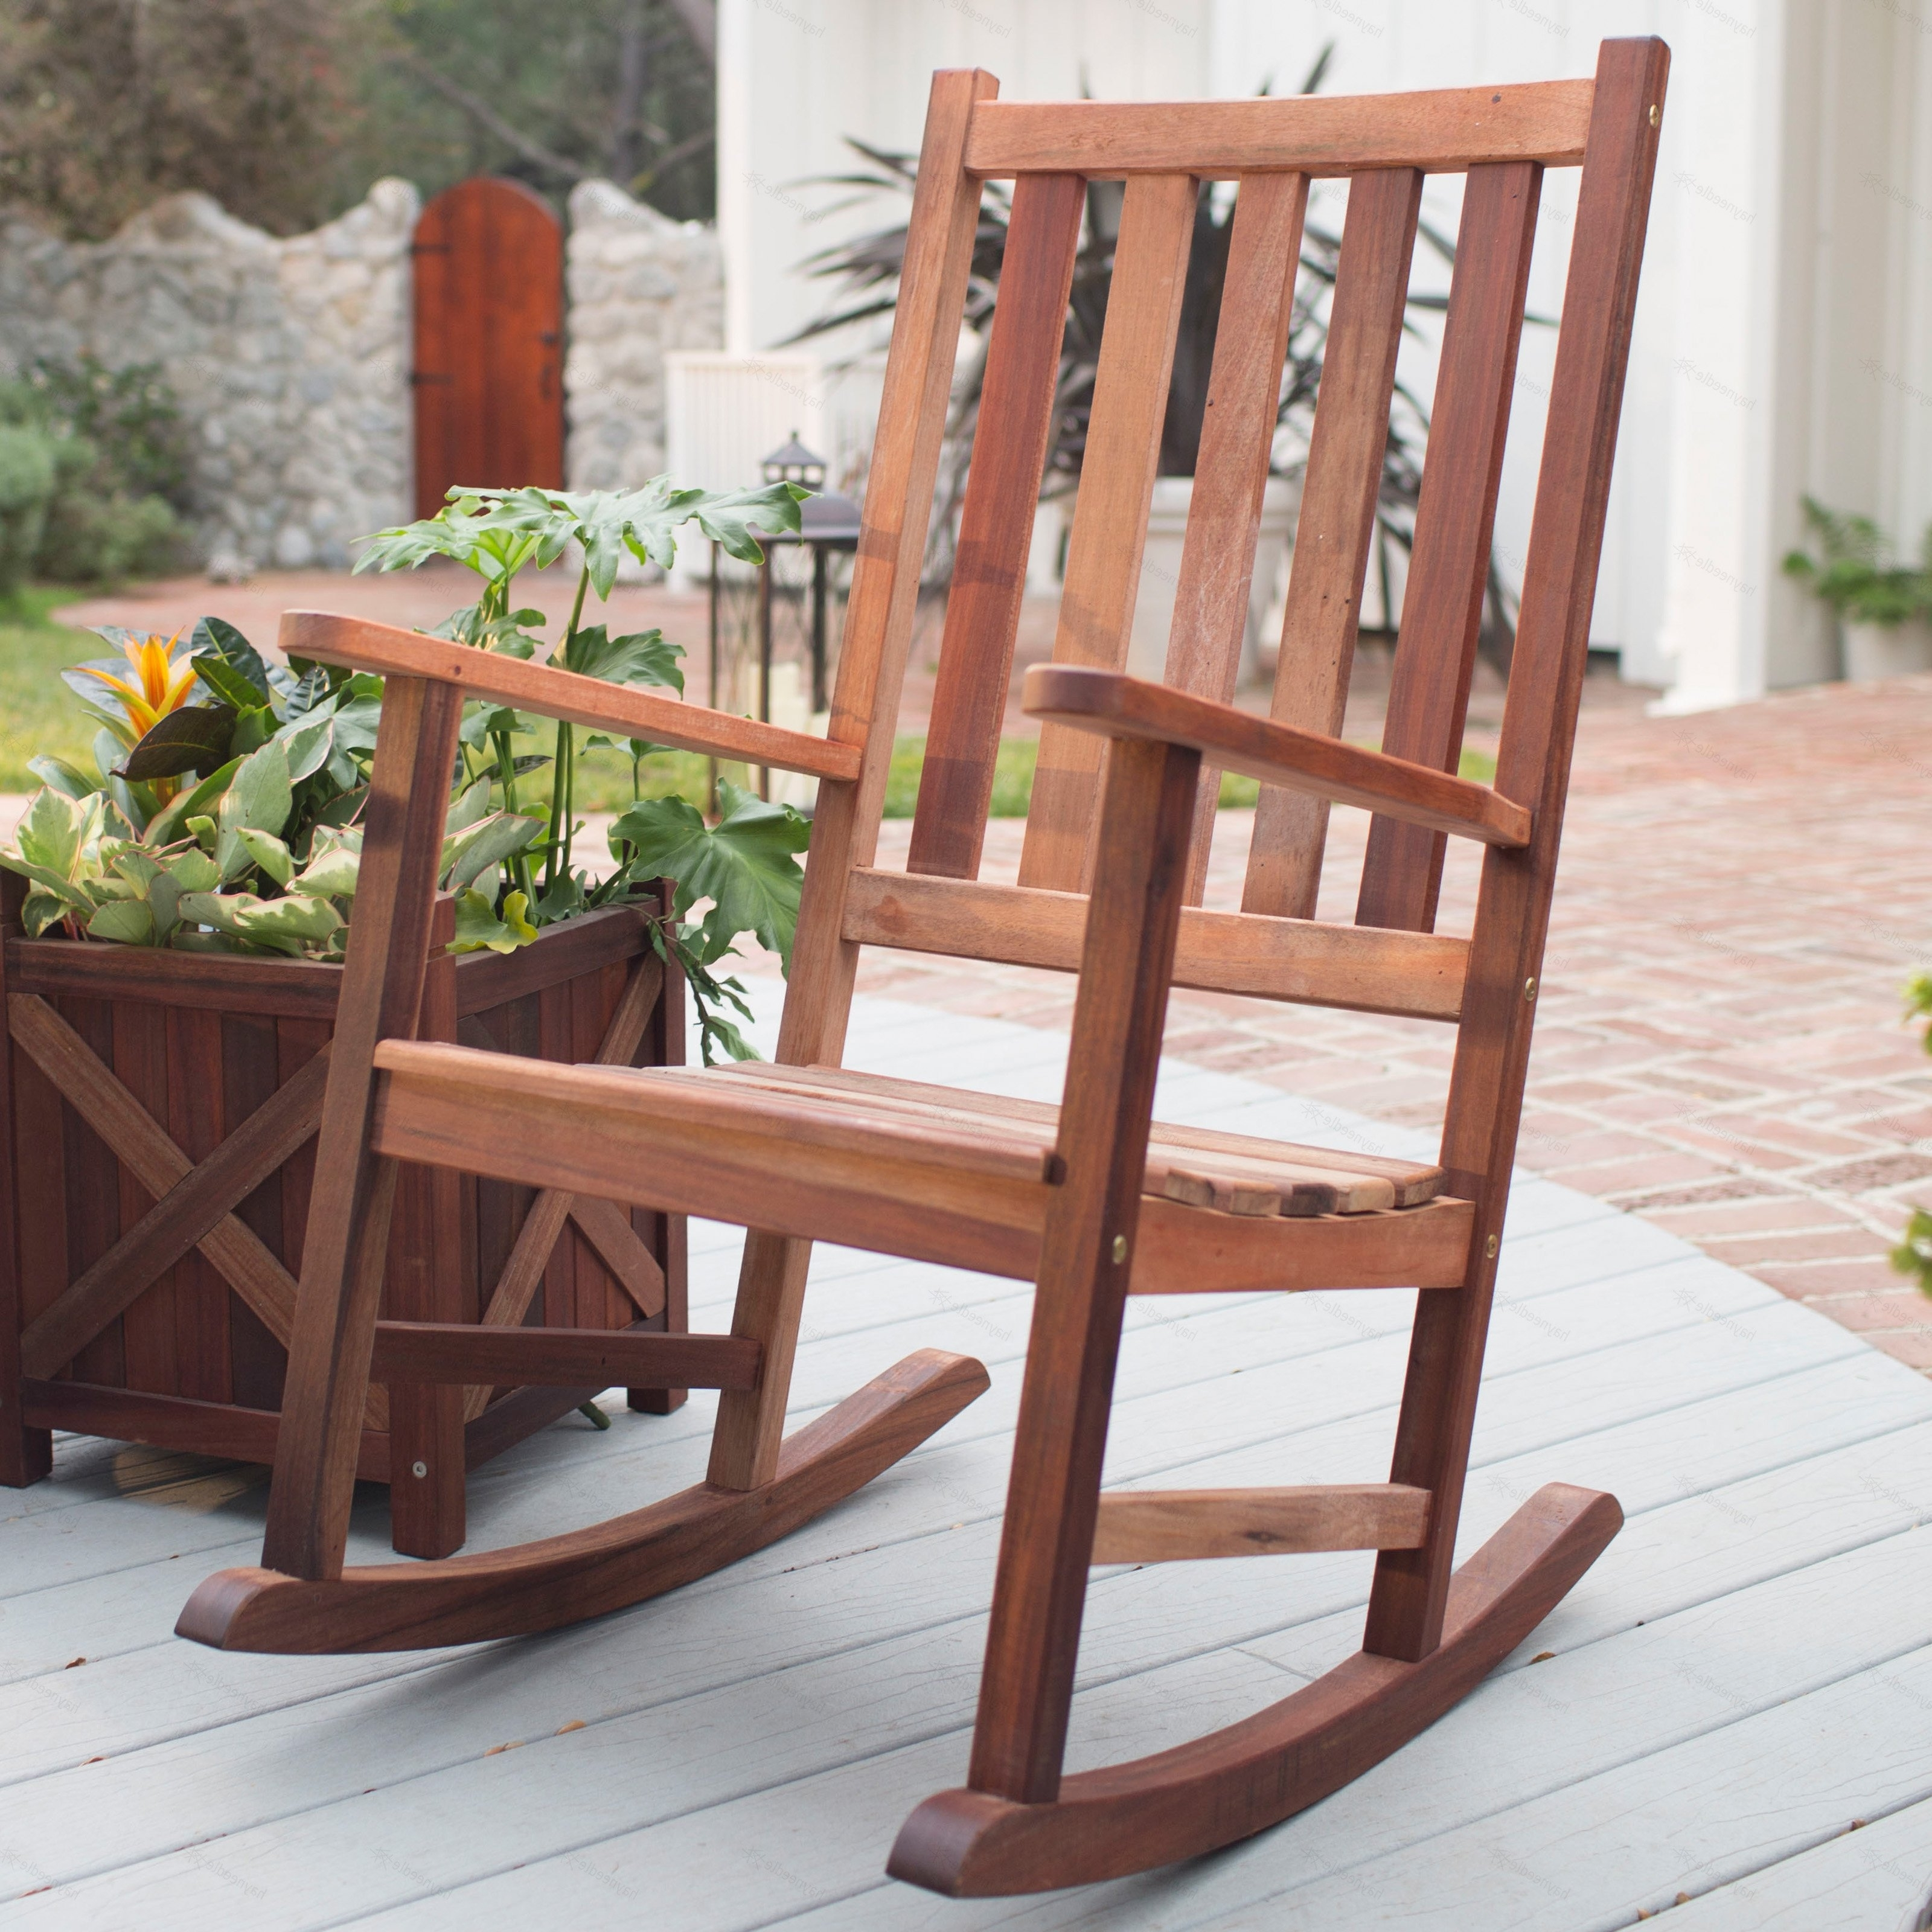 Enjoy A Comfortable Swing With Rocking Chair – Bellissimainteriors Throughout Recent Vintage Outdoor Rocking Chairs (View 12 of 20)